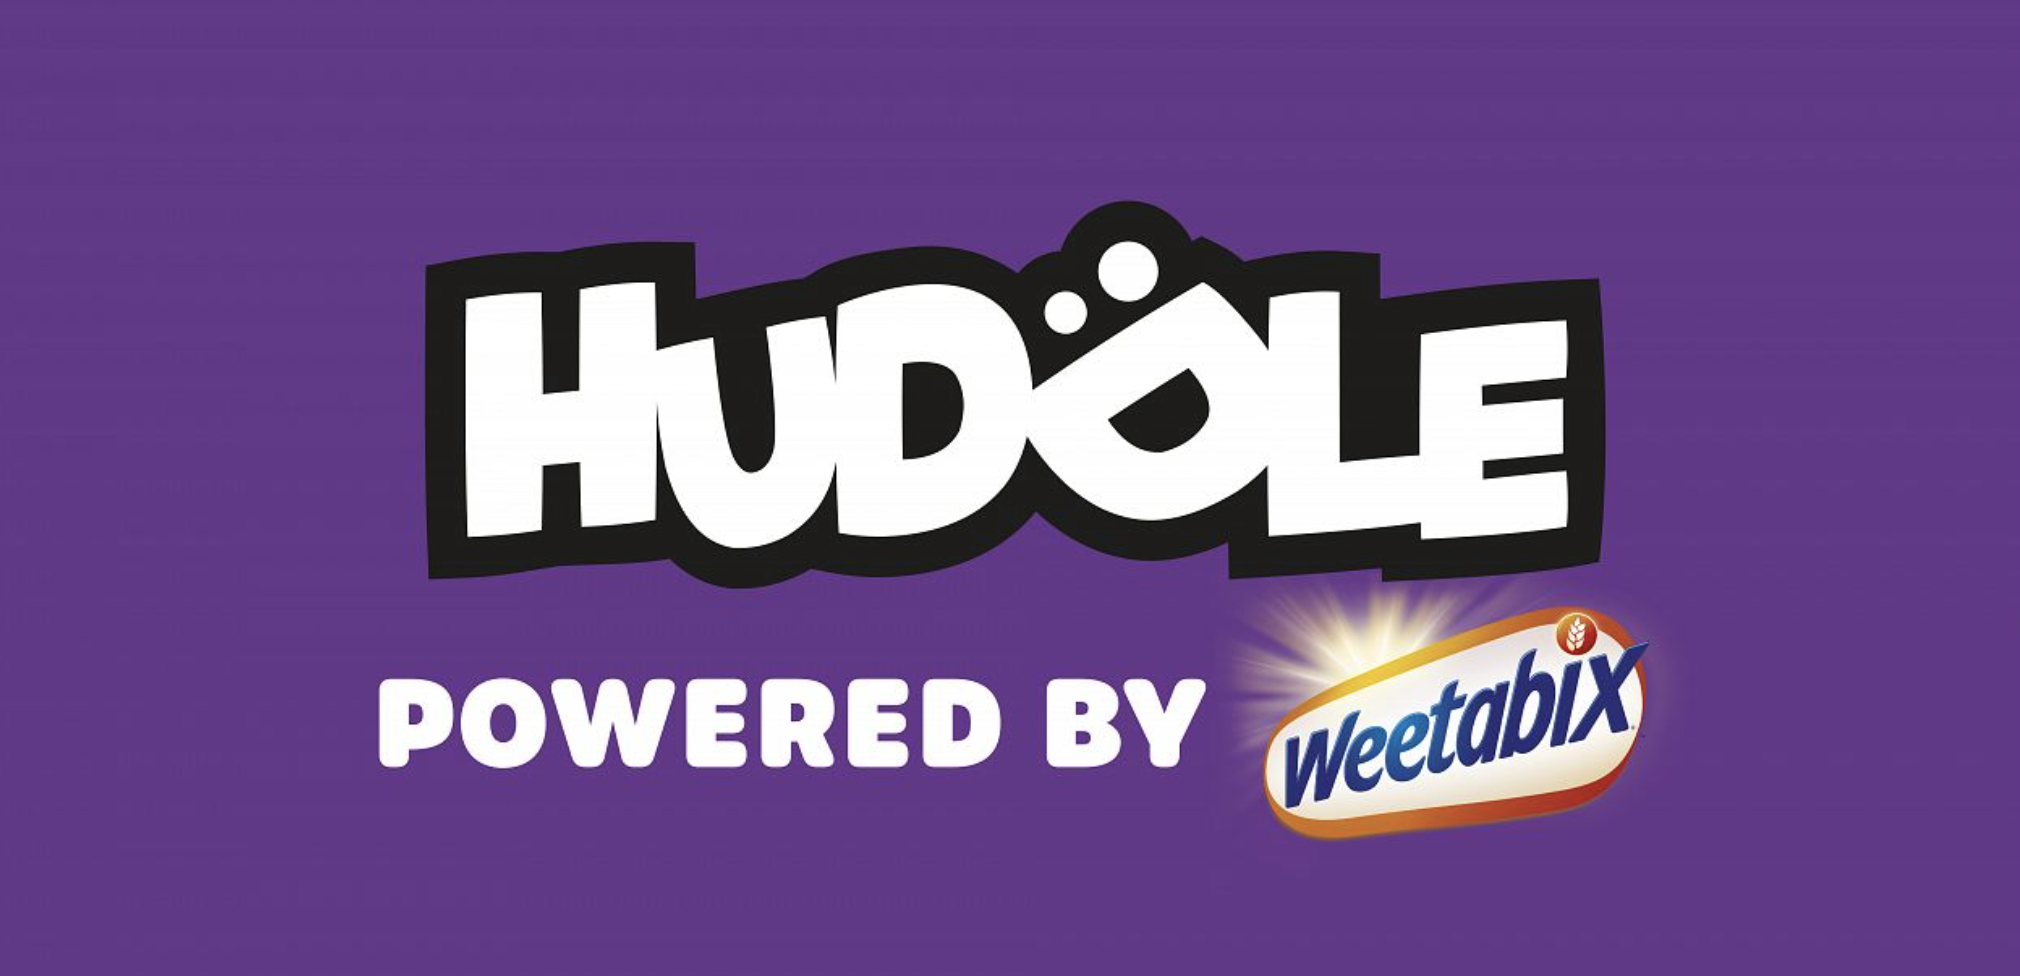 Huddle is now Powered by Weetabix